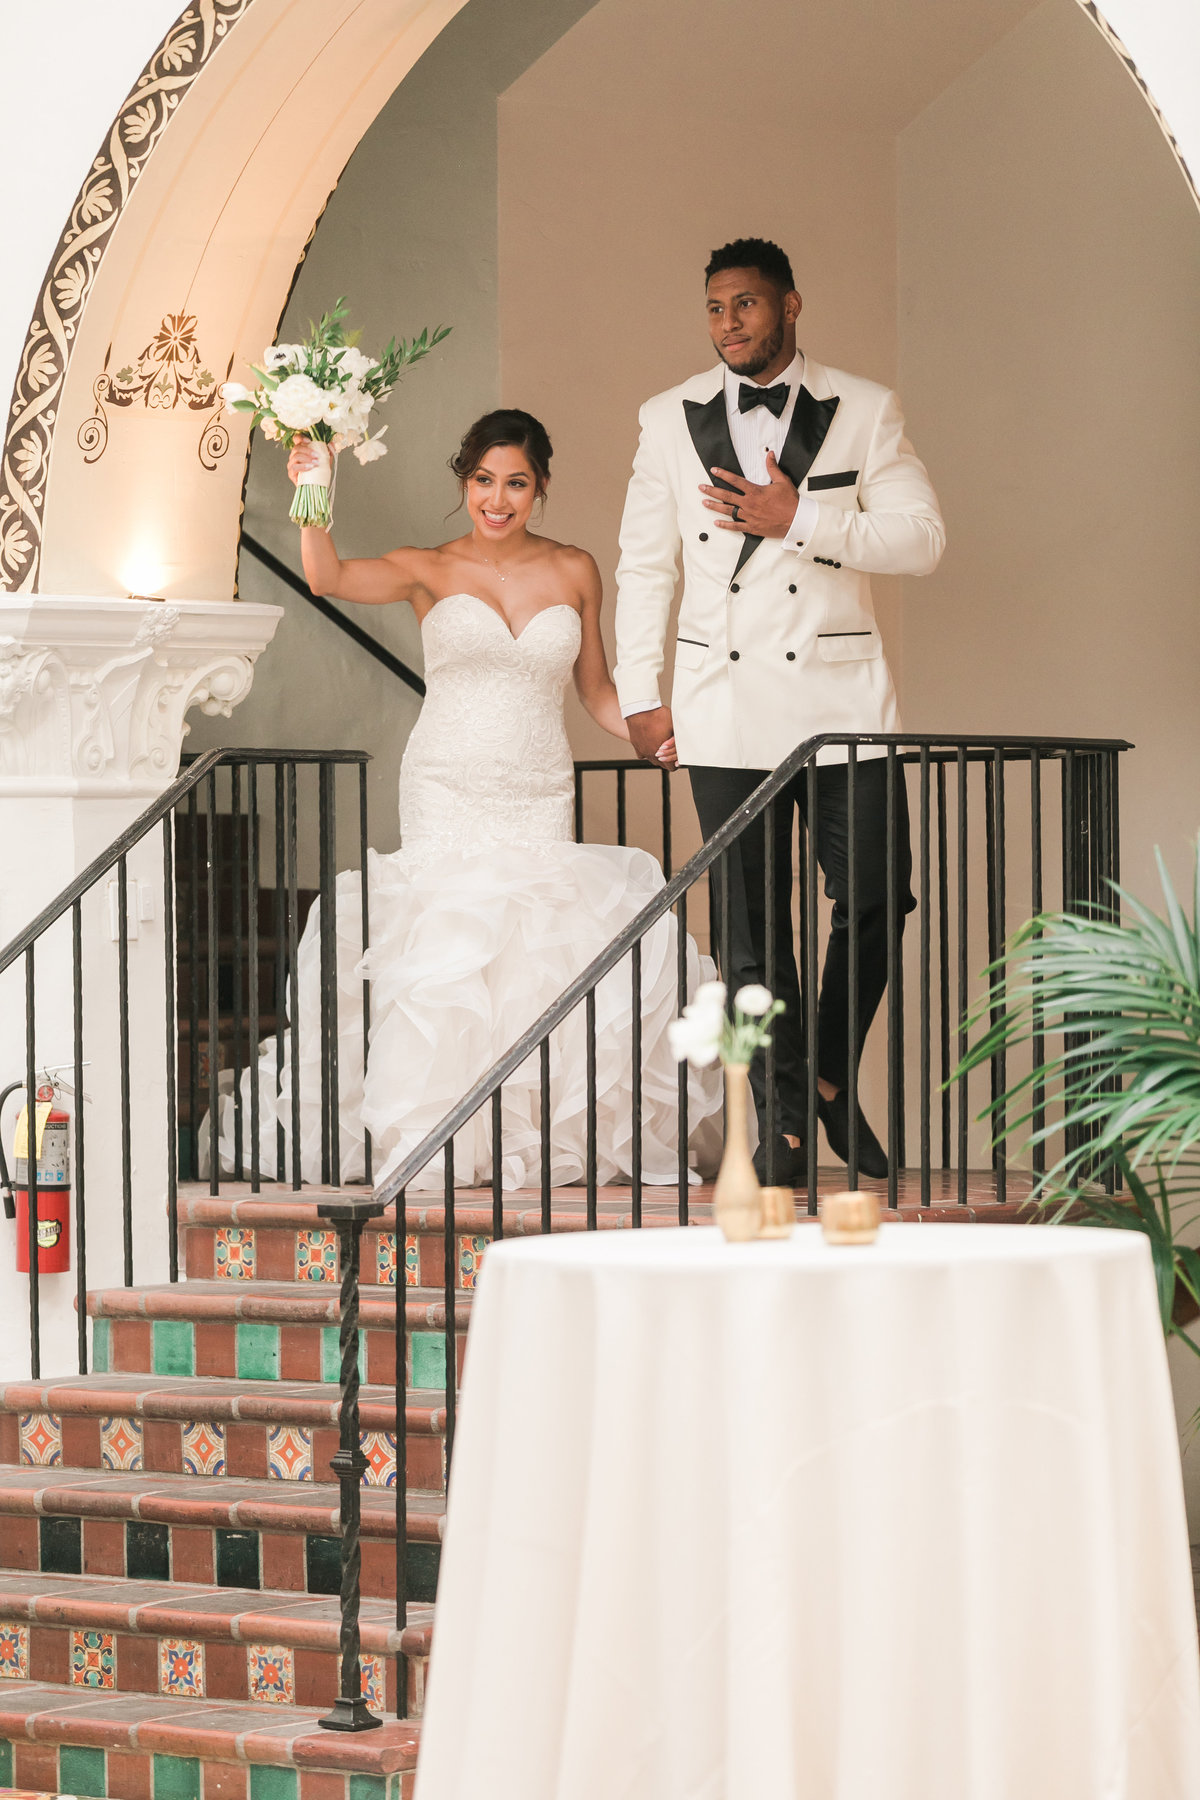 Ebell_Los_Angeles_Malcolm_Smith_NFL_Navy_Brass_Wedding_Valorie_Darling_Photography - 111 of 122